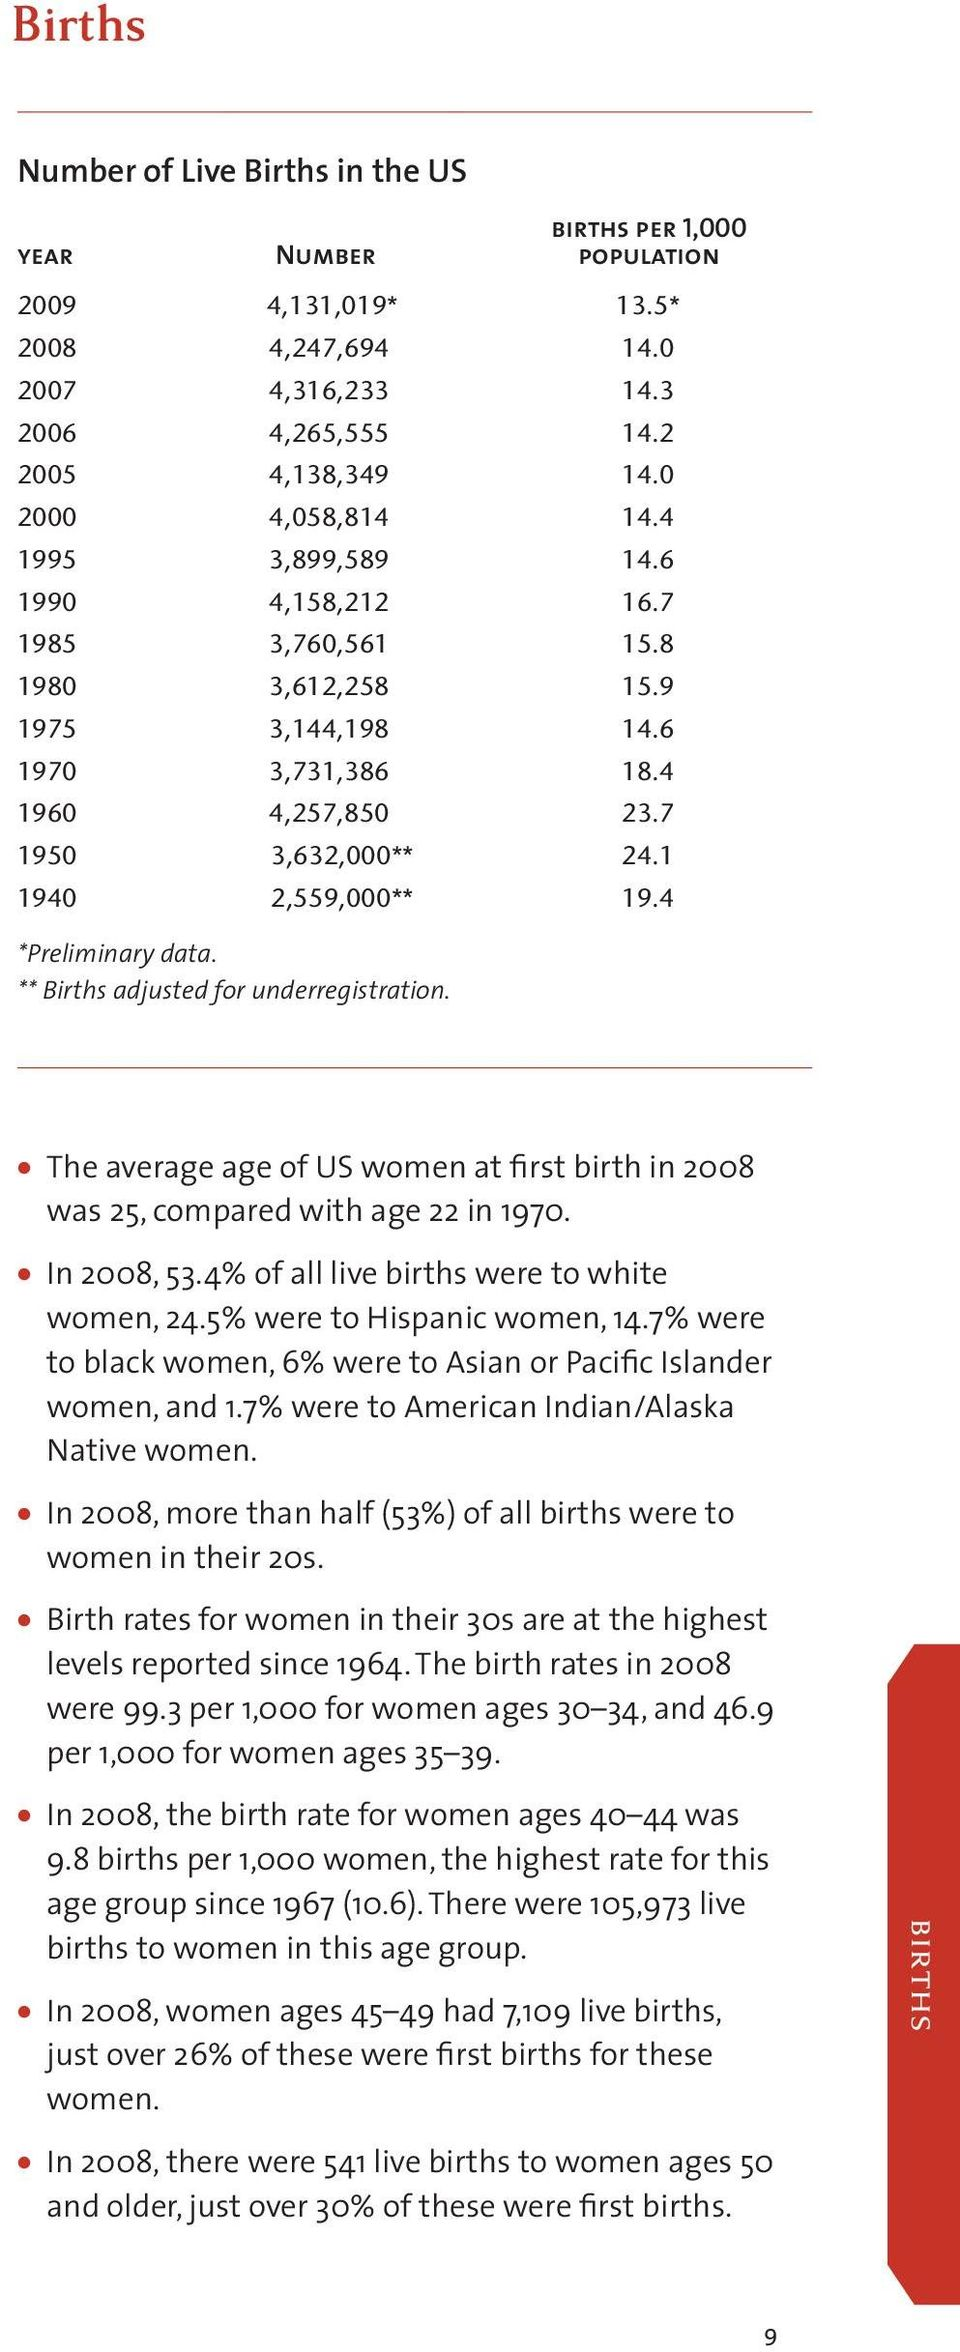 4 *Preliminary data. ** Births adjusted for underregistration. The average age of US women at first birth in 2008 was 25, compared with age 22 in 1970. In 2008, 53.